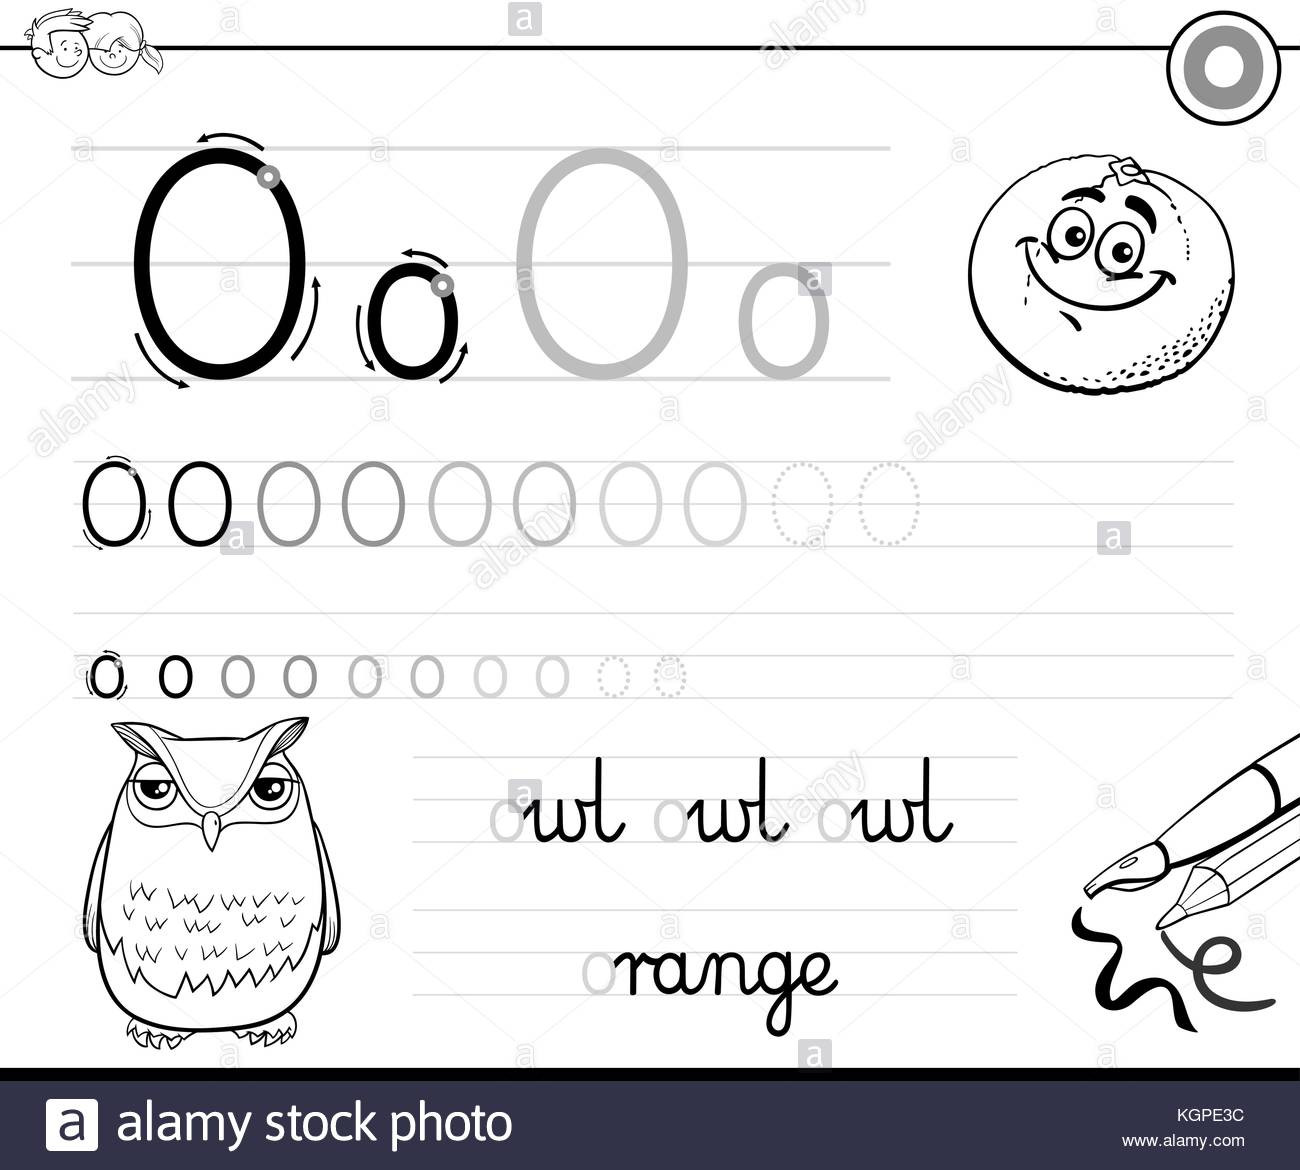 Letter O Worksheets for Preschool Black and White Cartoon Illustration Of Writing Skills